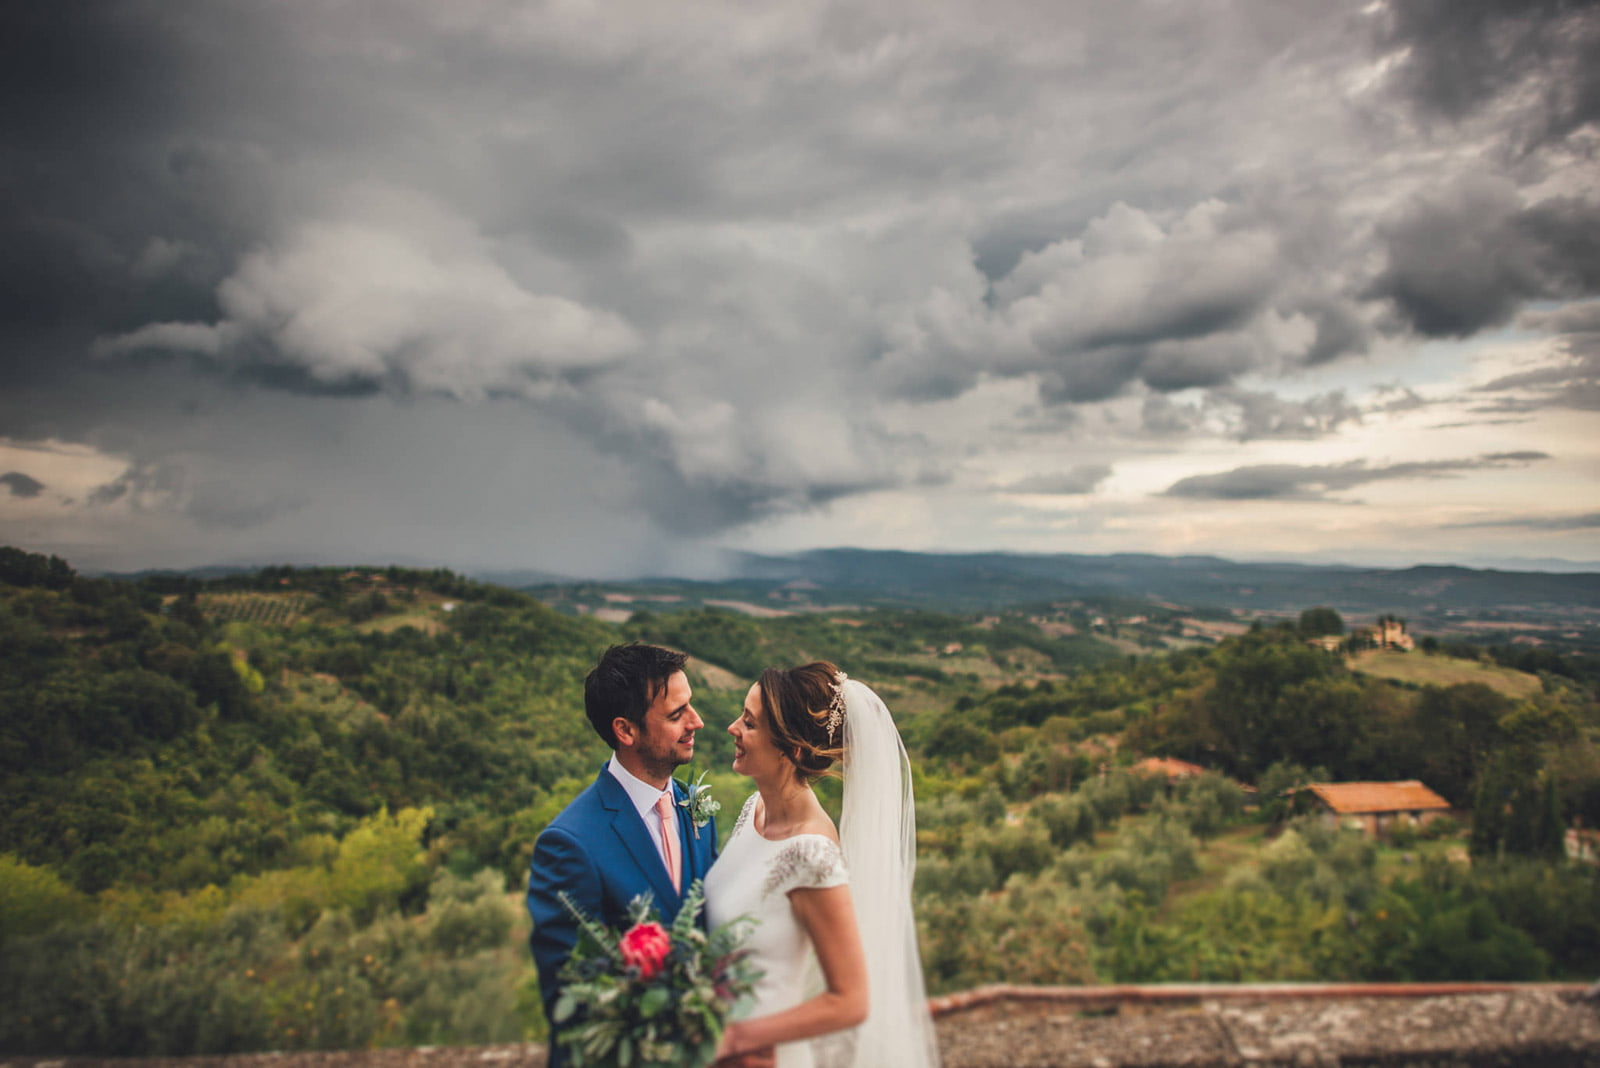 078-wedding-tuscany-san-galgano-federico-pannacci-photographer